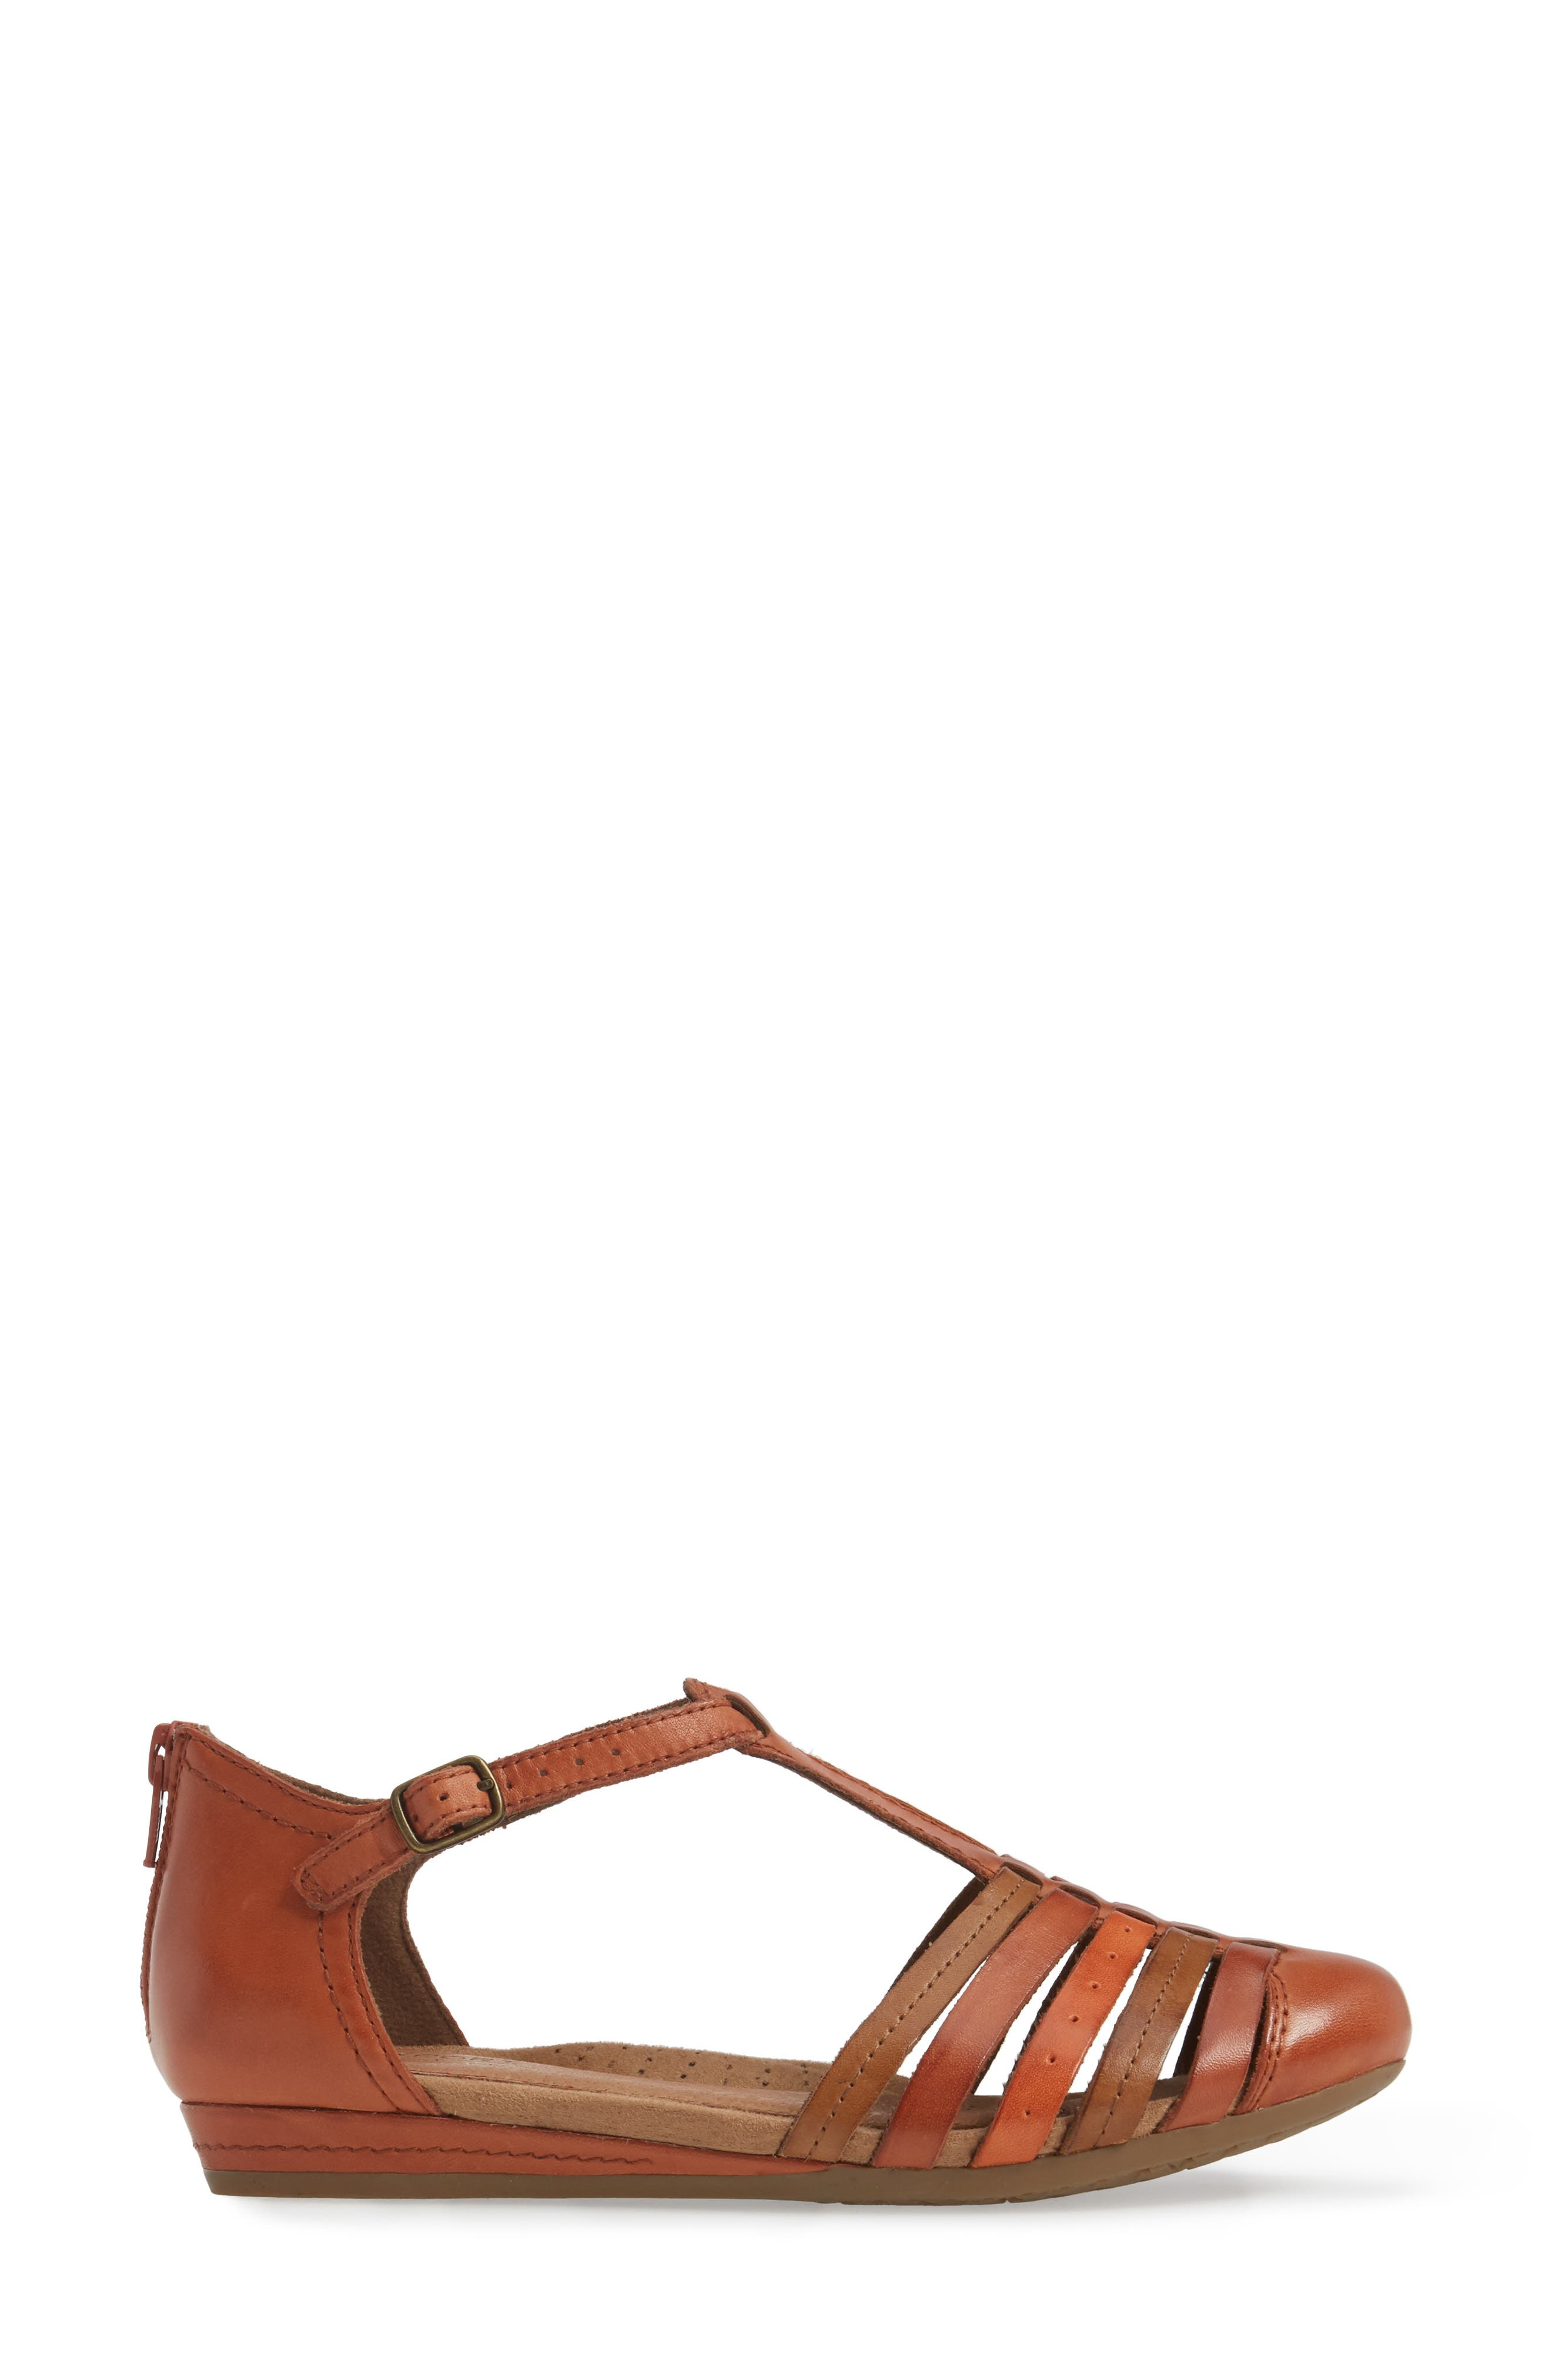 Galway T-Strap Sandal,                             Alternate thumbnail 12, color,